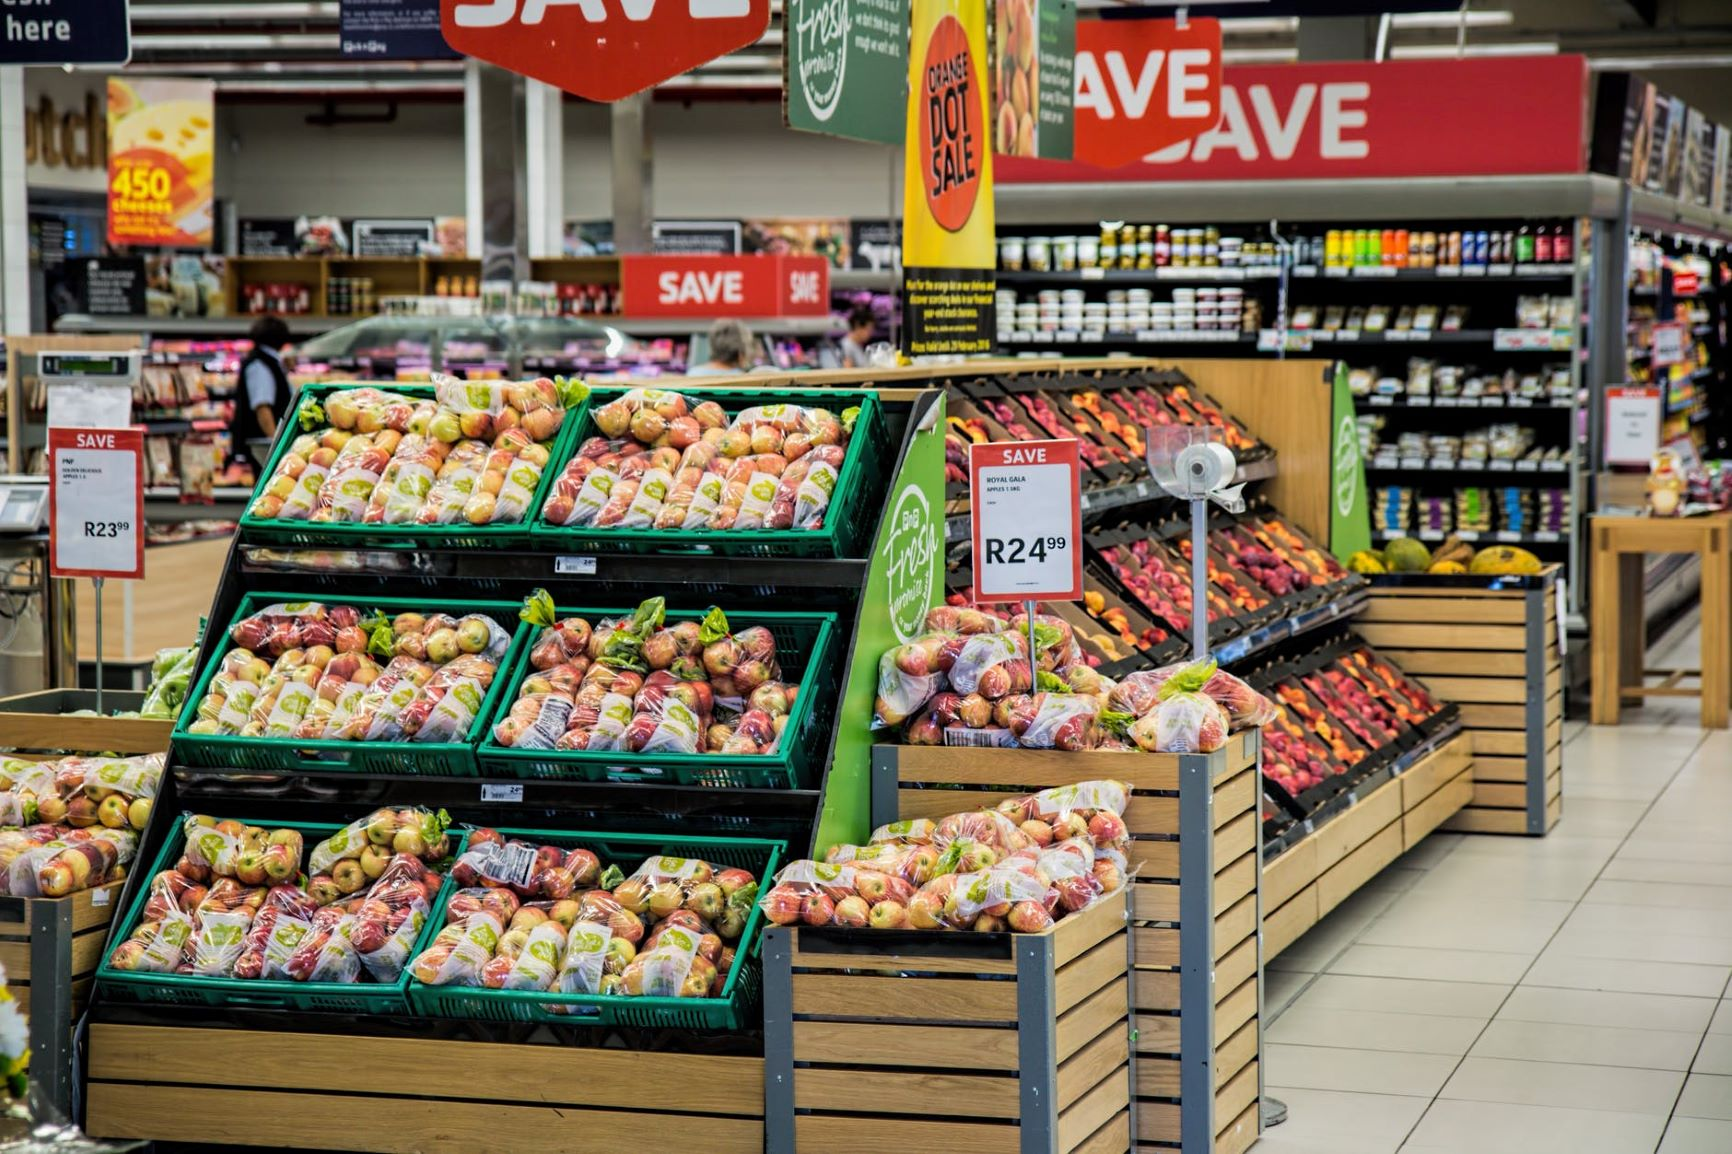 online grocery store - 5 Essential Benefits of Grocery Shopping Online